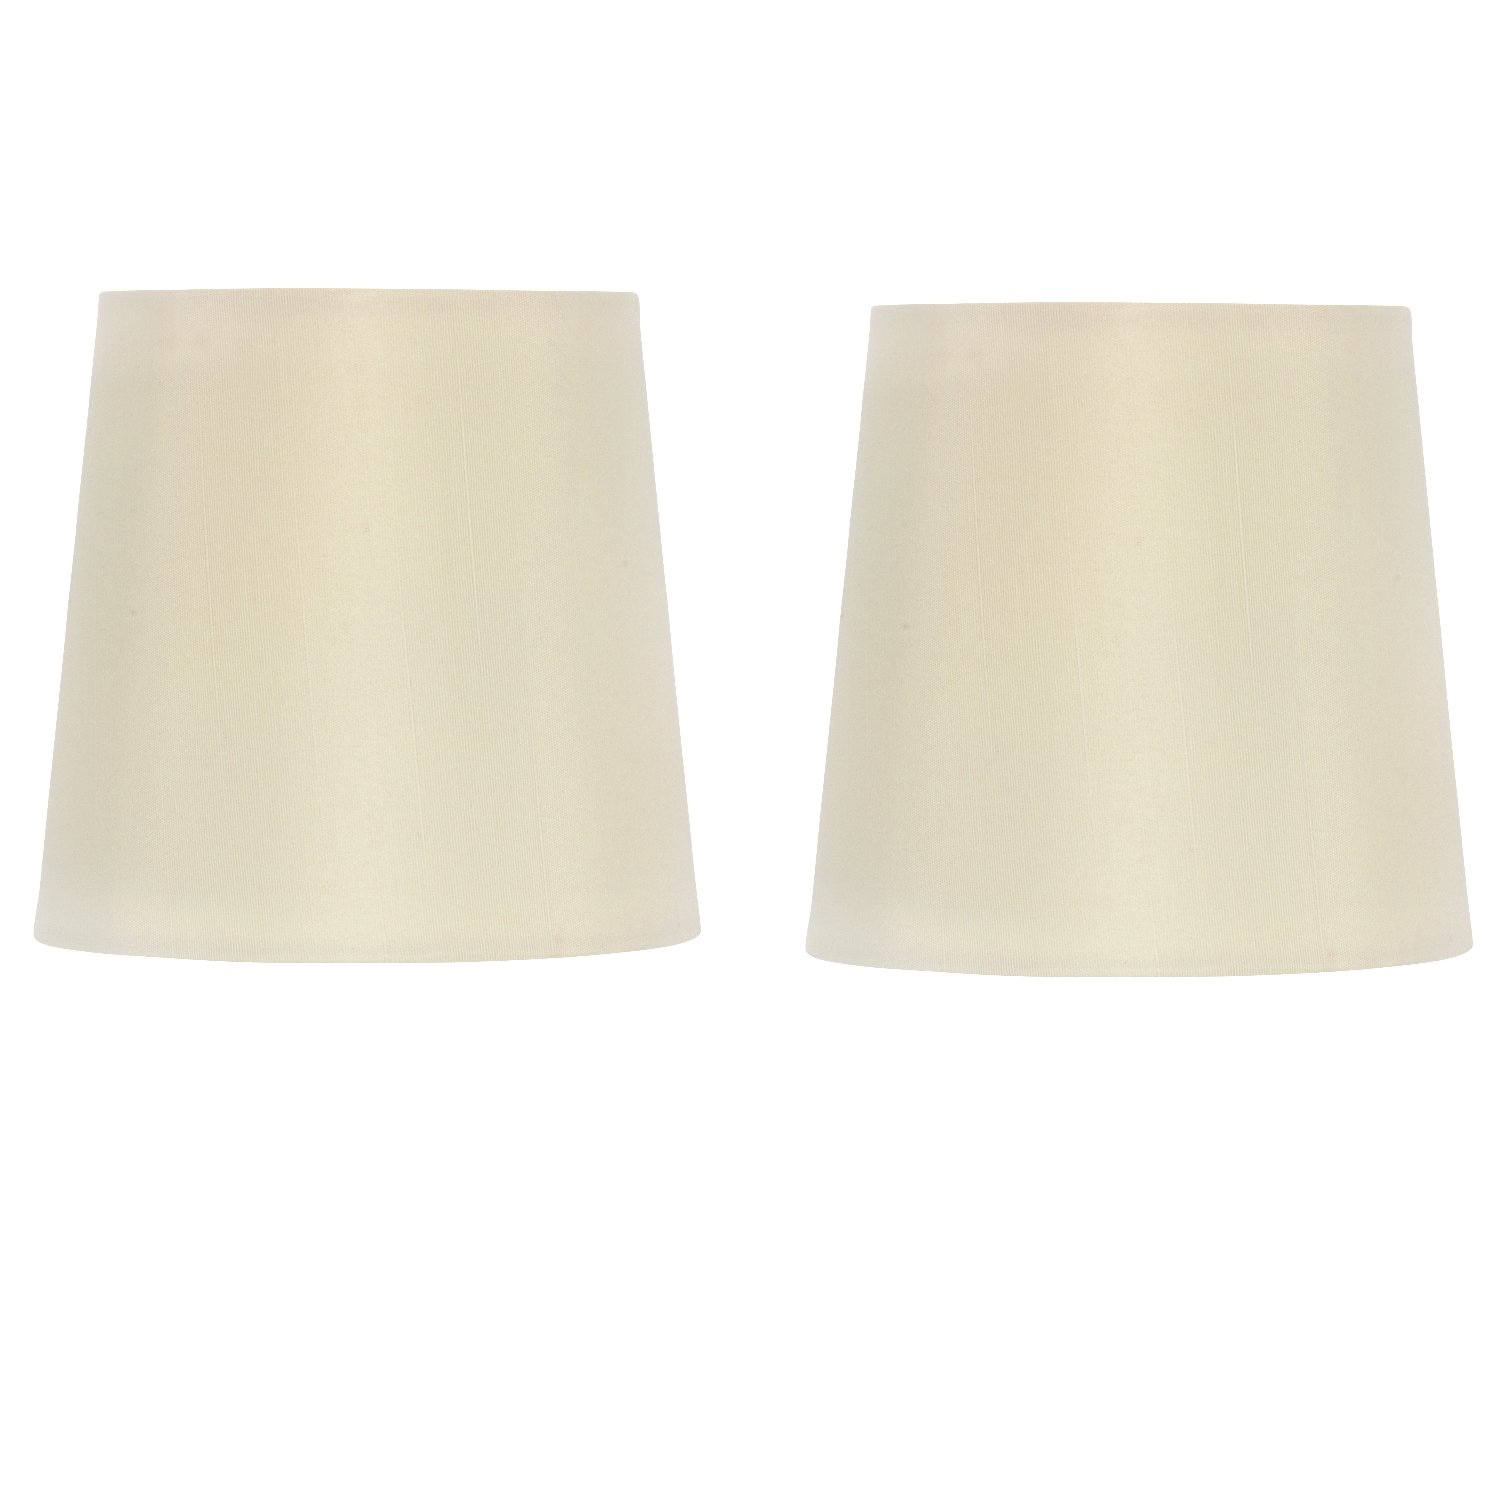 Cheap retro lamp shade find retro lamp shade deals on line at get quotations upgradelights set of 2 chandelier lamp shade clip on shade 5 inch eggshell retro drum aloadofball